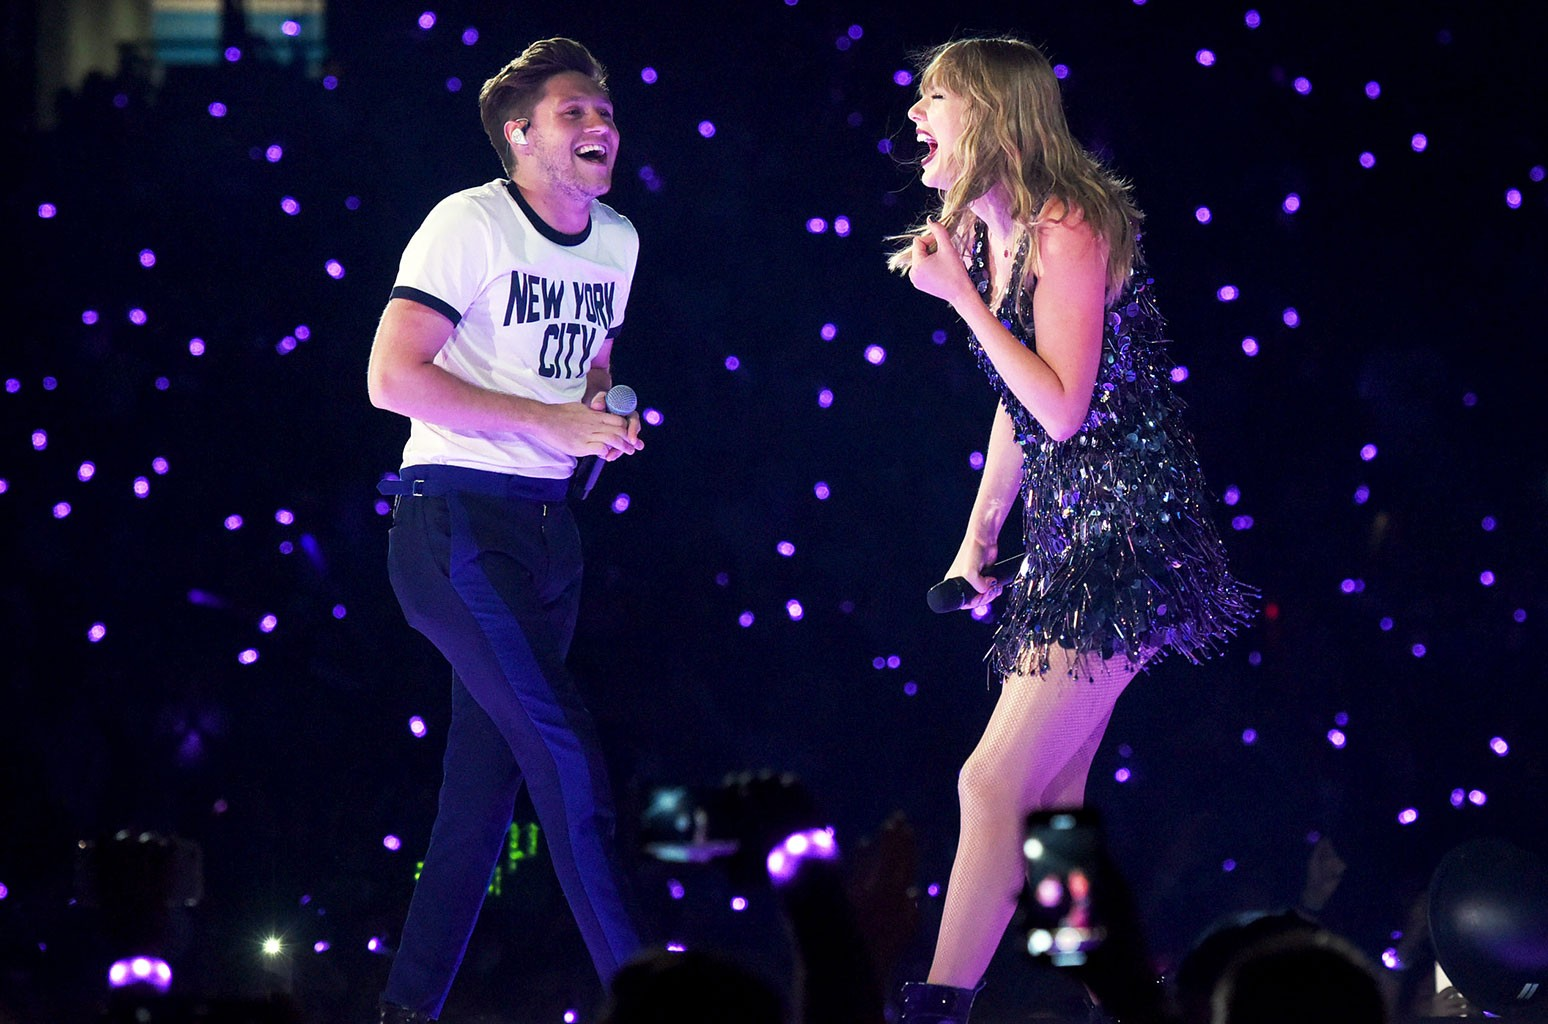 Taylor Swift and Niall Horan